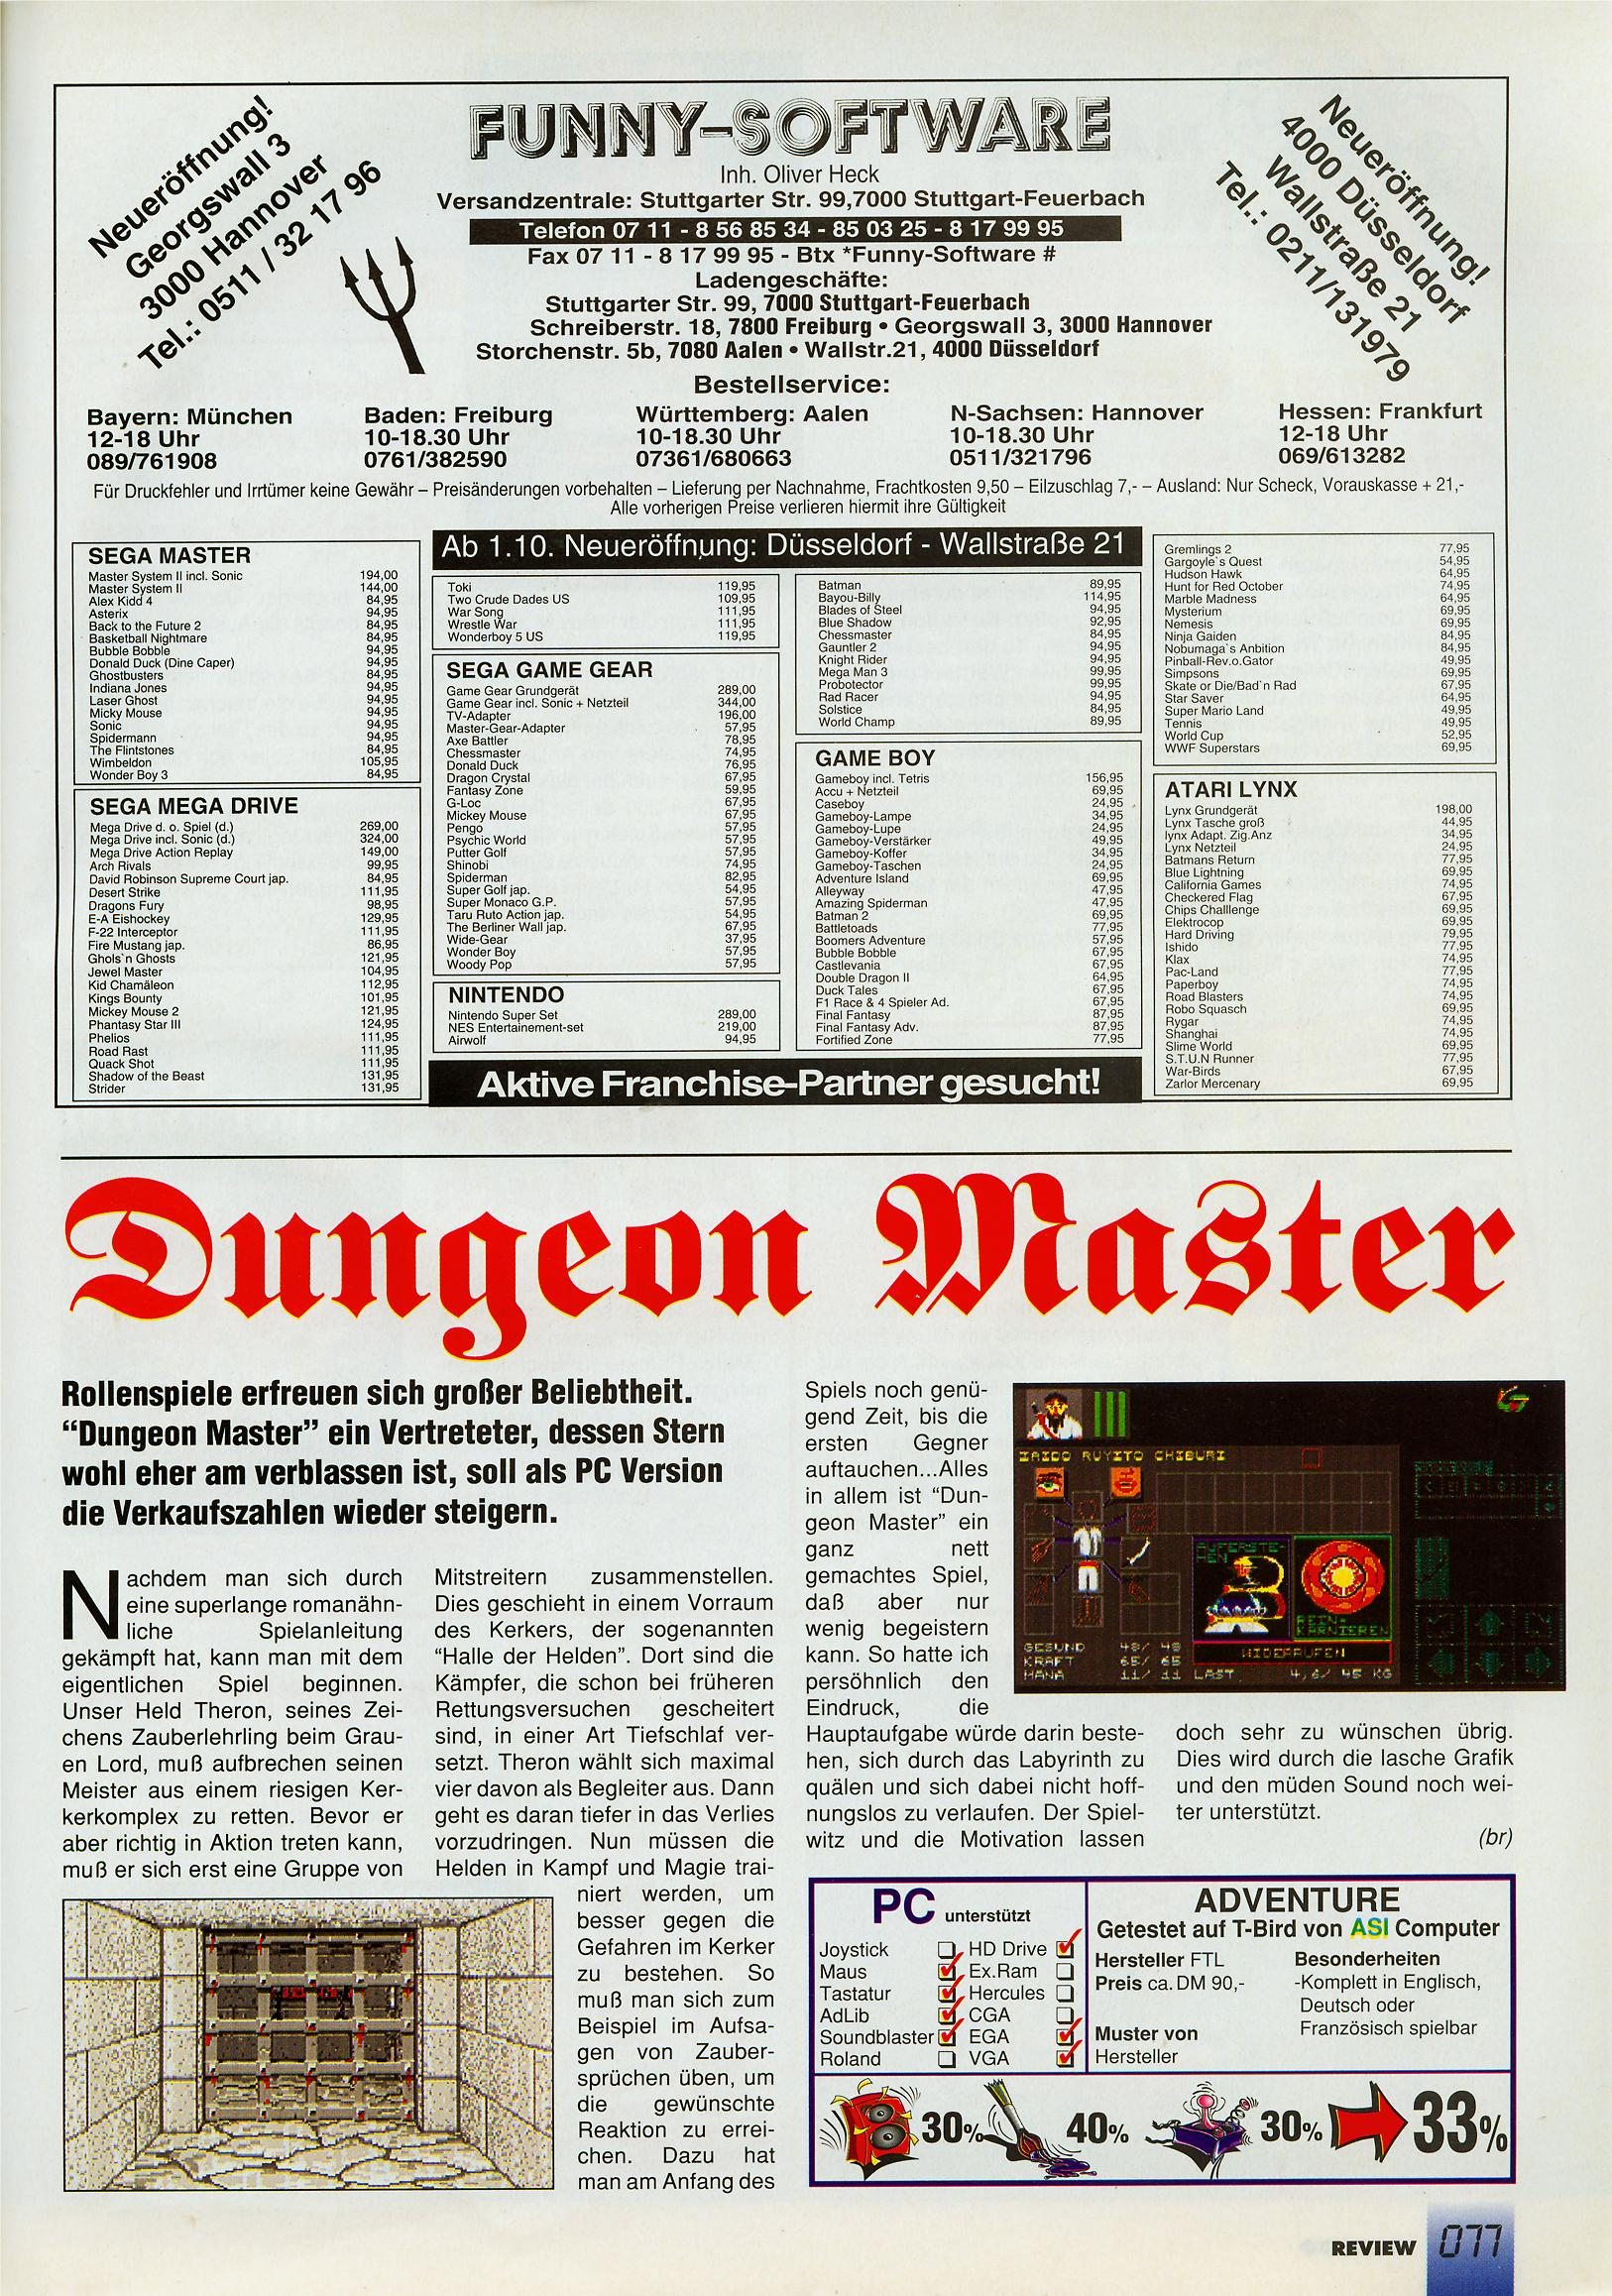 Dungeon Master for PC Review published in German magazine 'Play Time', November 1992, Page 77